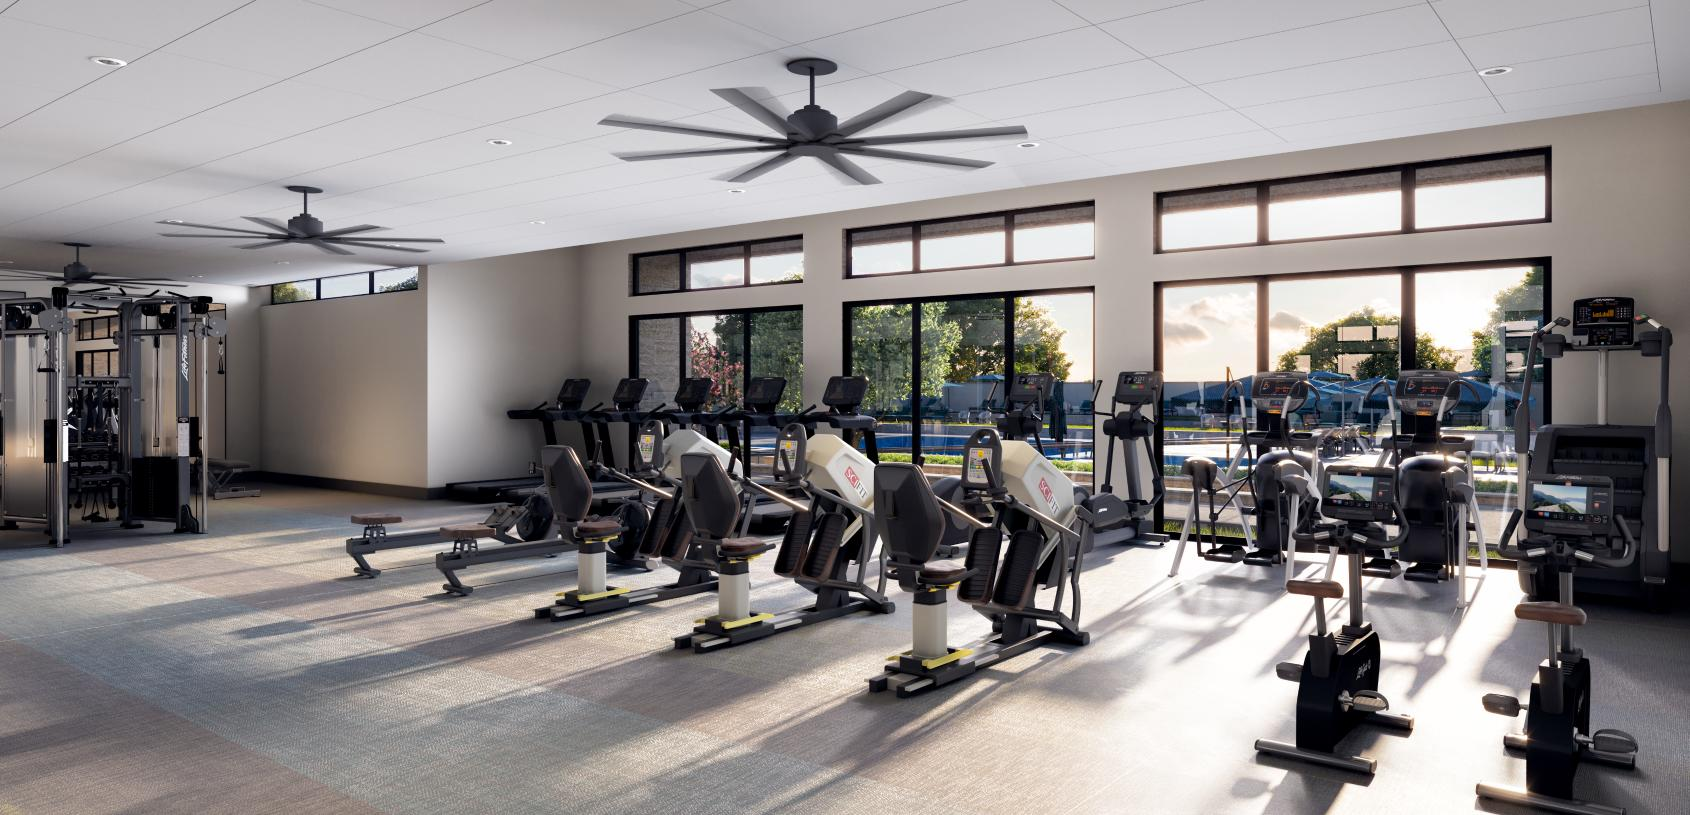 Get a good workout at the clubhouse gym